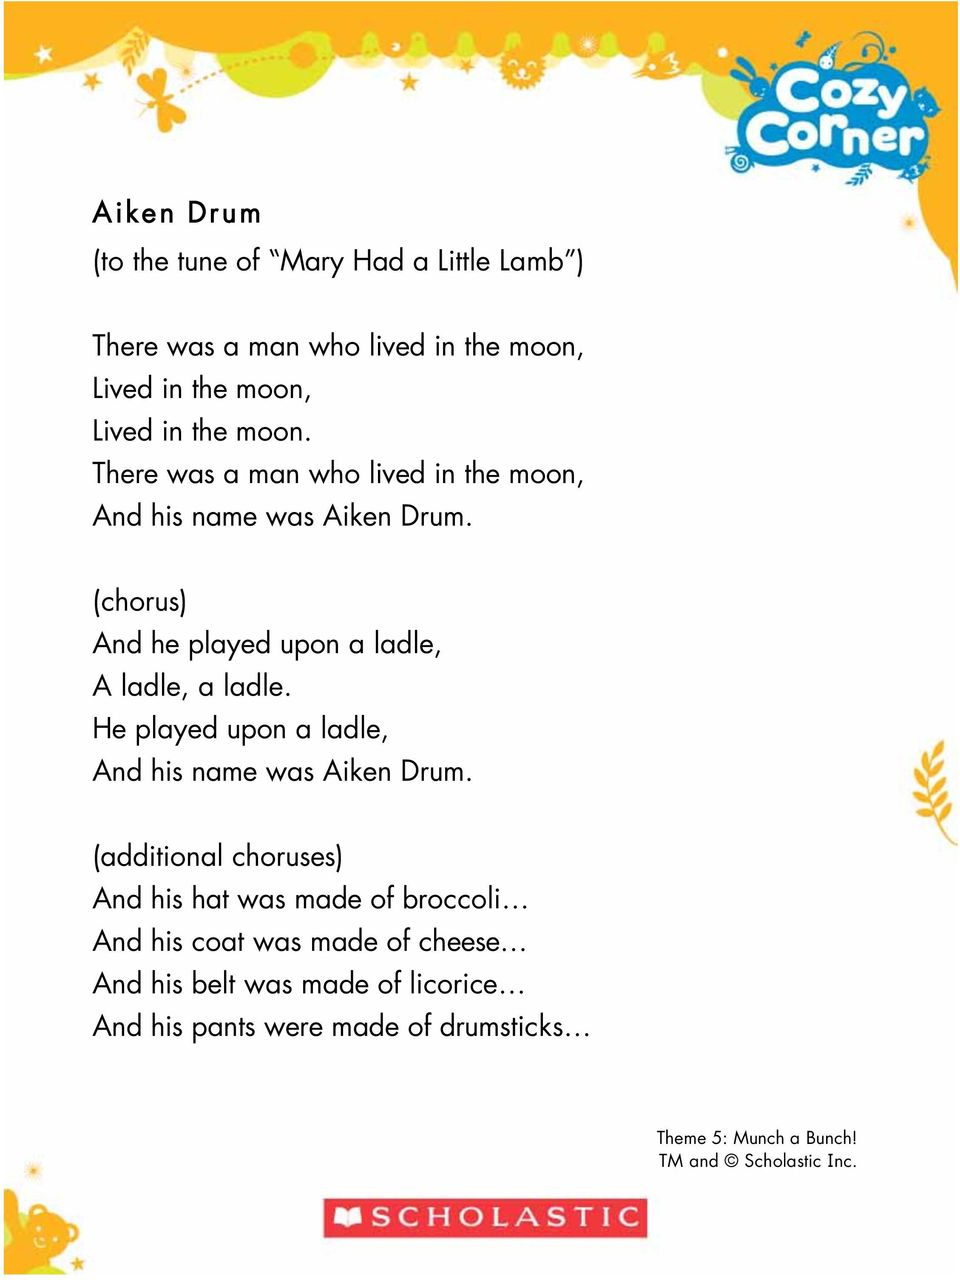 (chorus) And he played upon a ladle, A ladle, a ladle. He played upon a ladle, And his name was Aiken Drum.